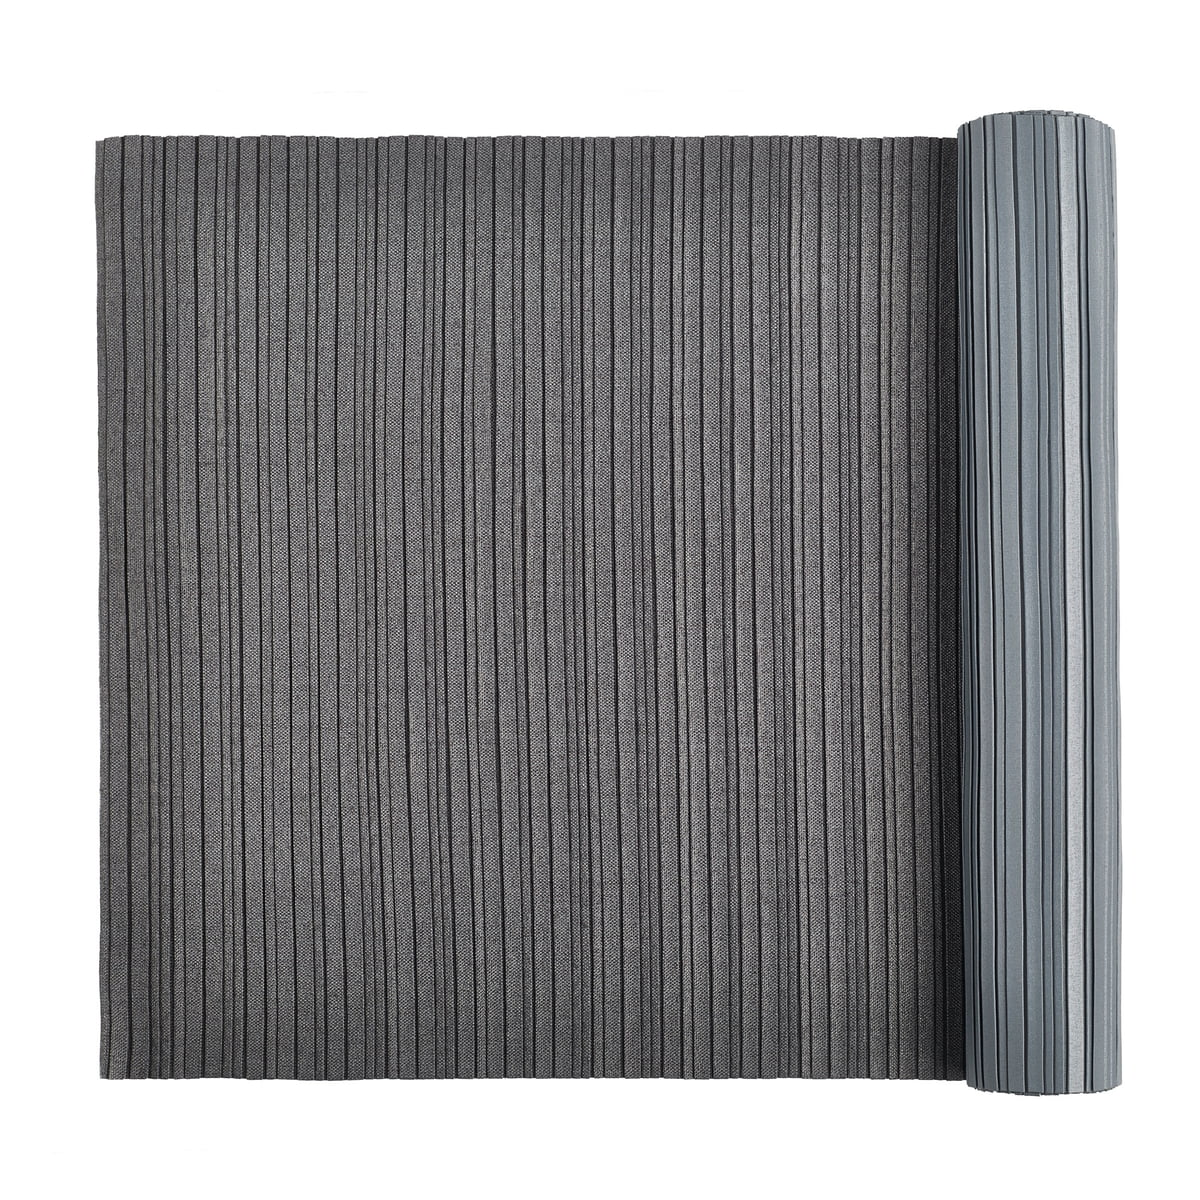 2f593d5f007 Iittala X Issey Miyake - table runner 2 m pleated, dark gray